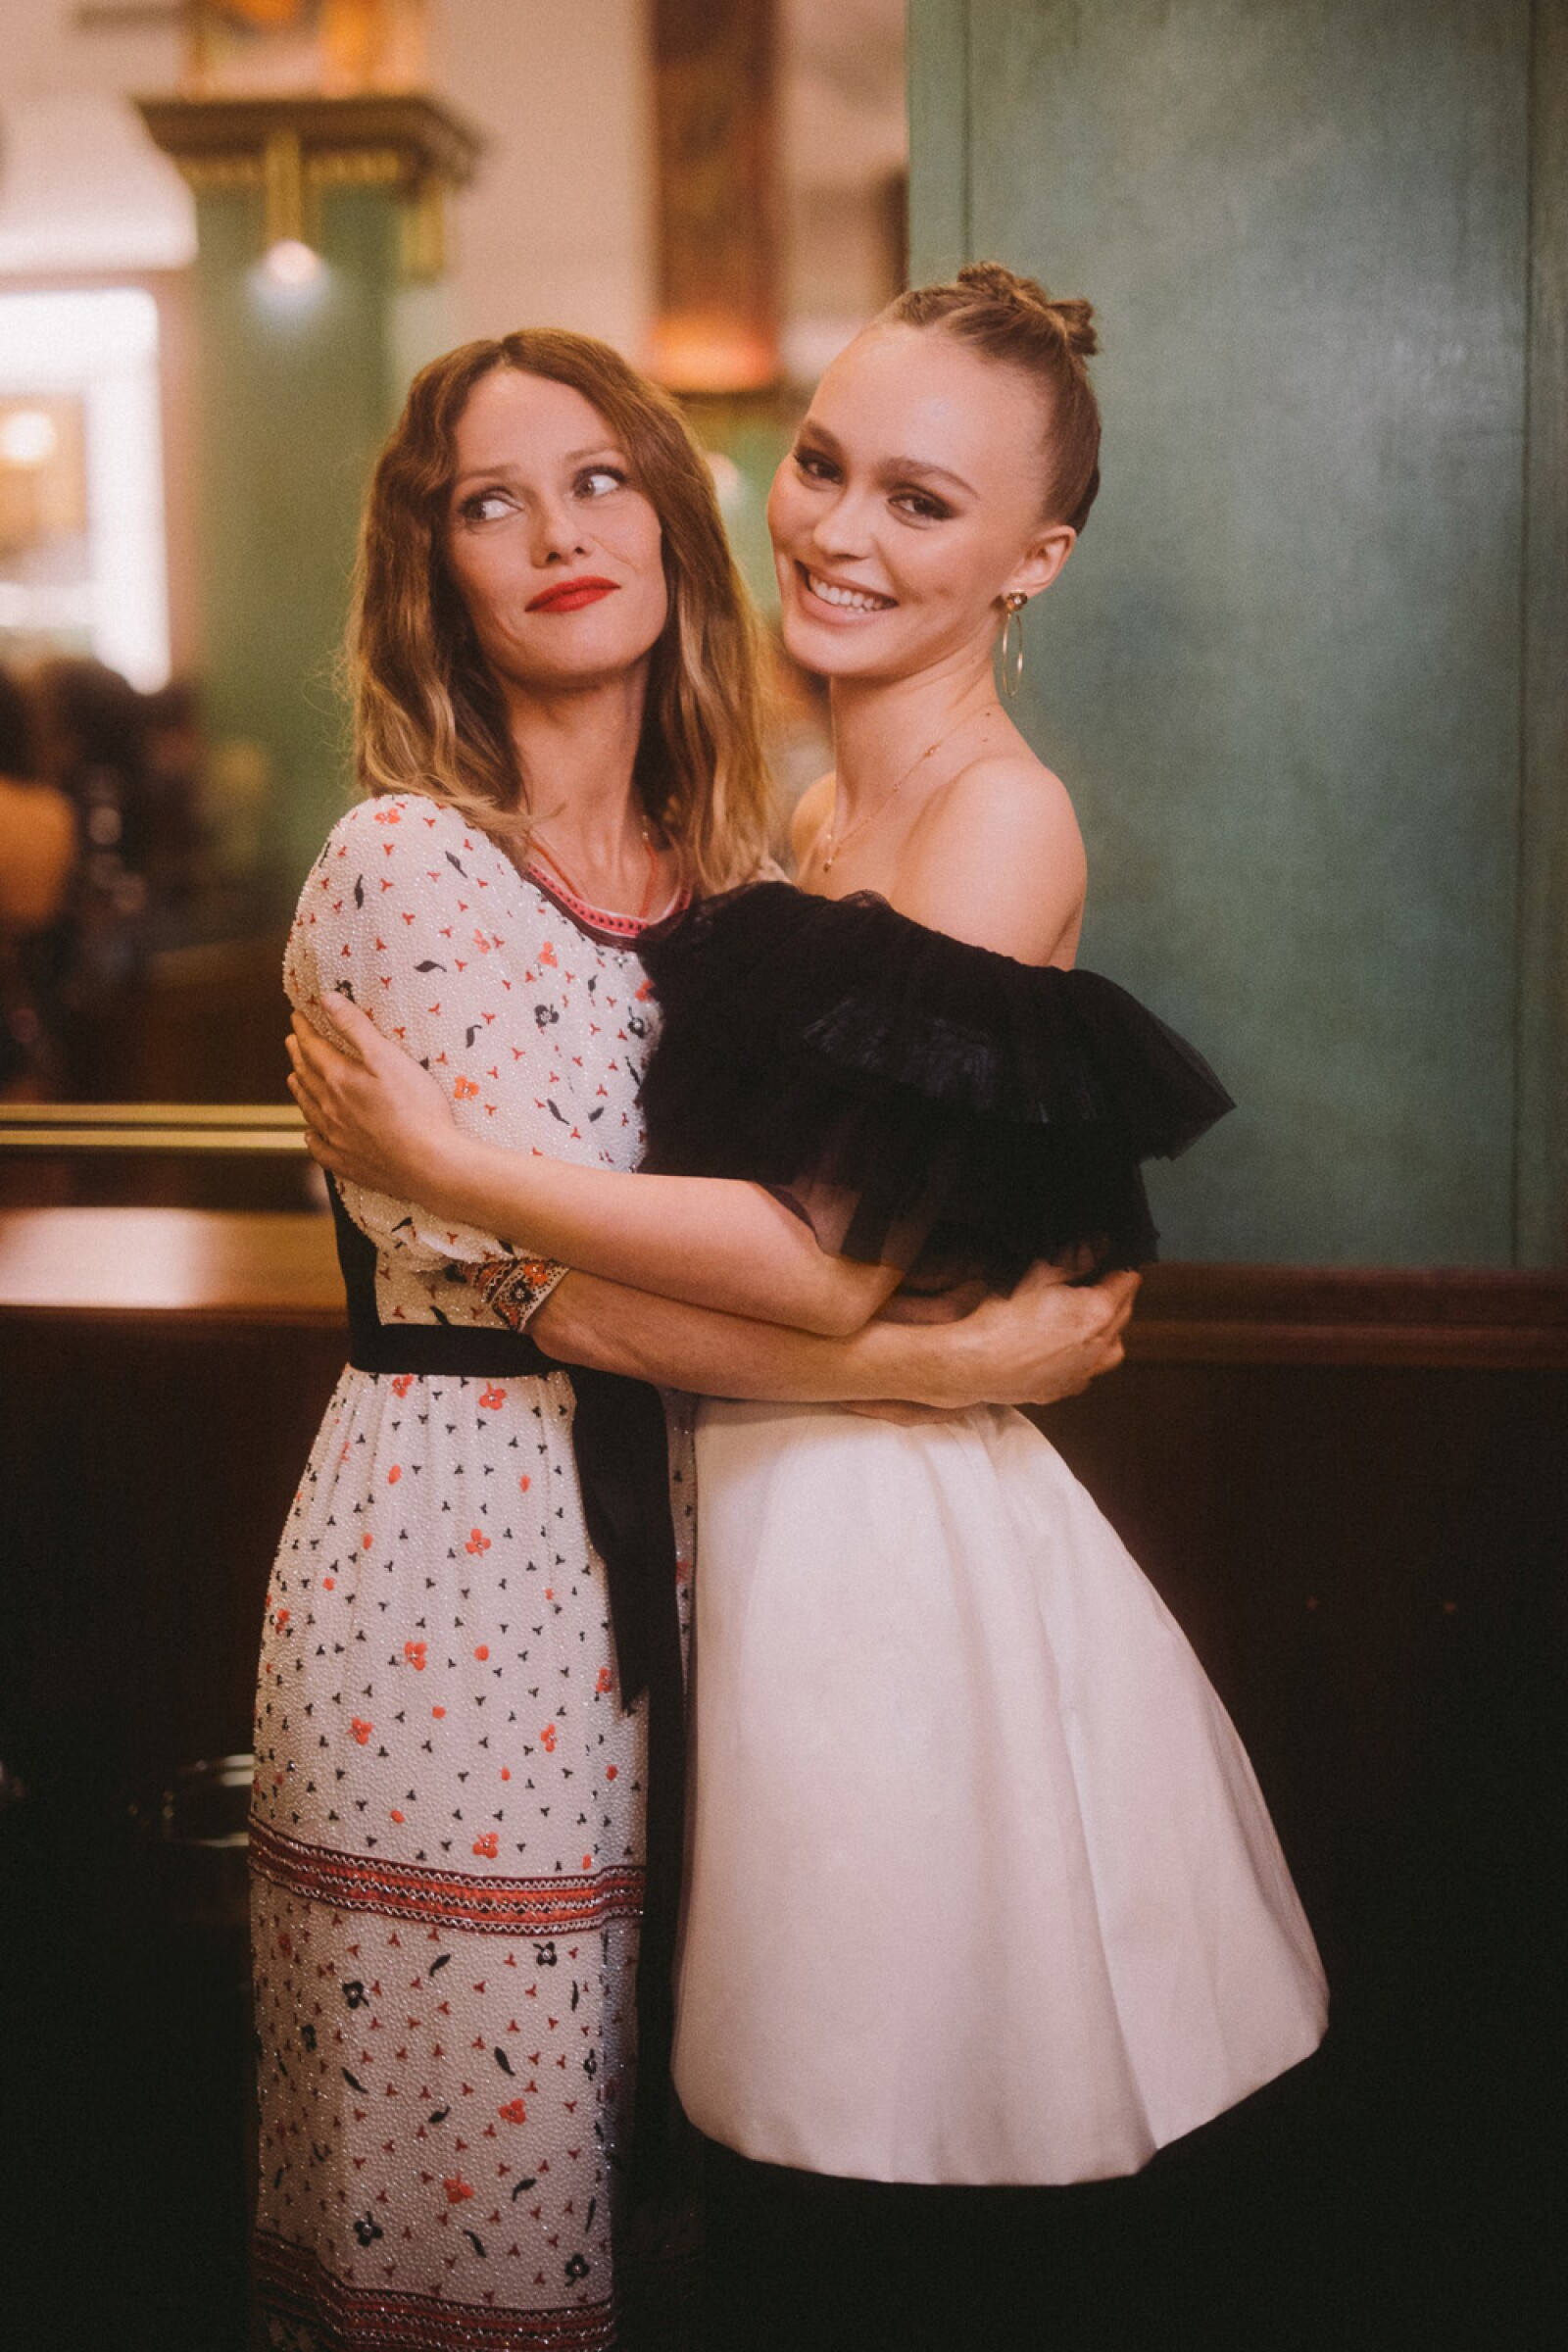 02_Vanessa_PARADIS_Lily_Rose_DEPP_CHANEL_Metiers_d_art_Show_2019_20_2_02.jpg